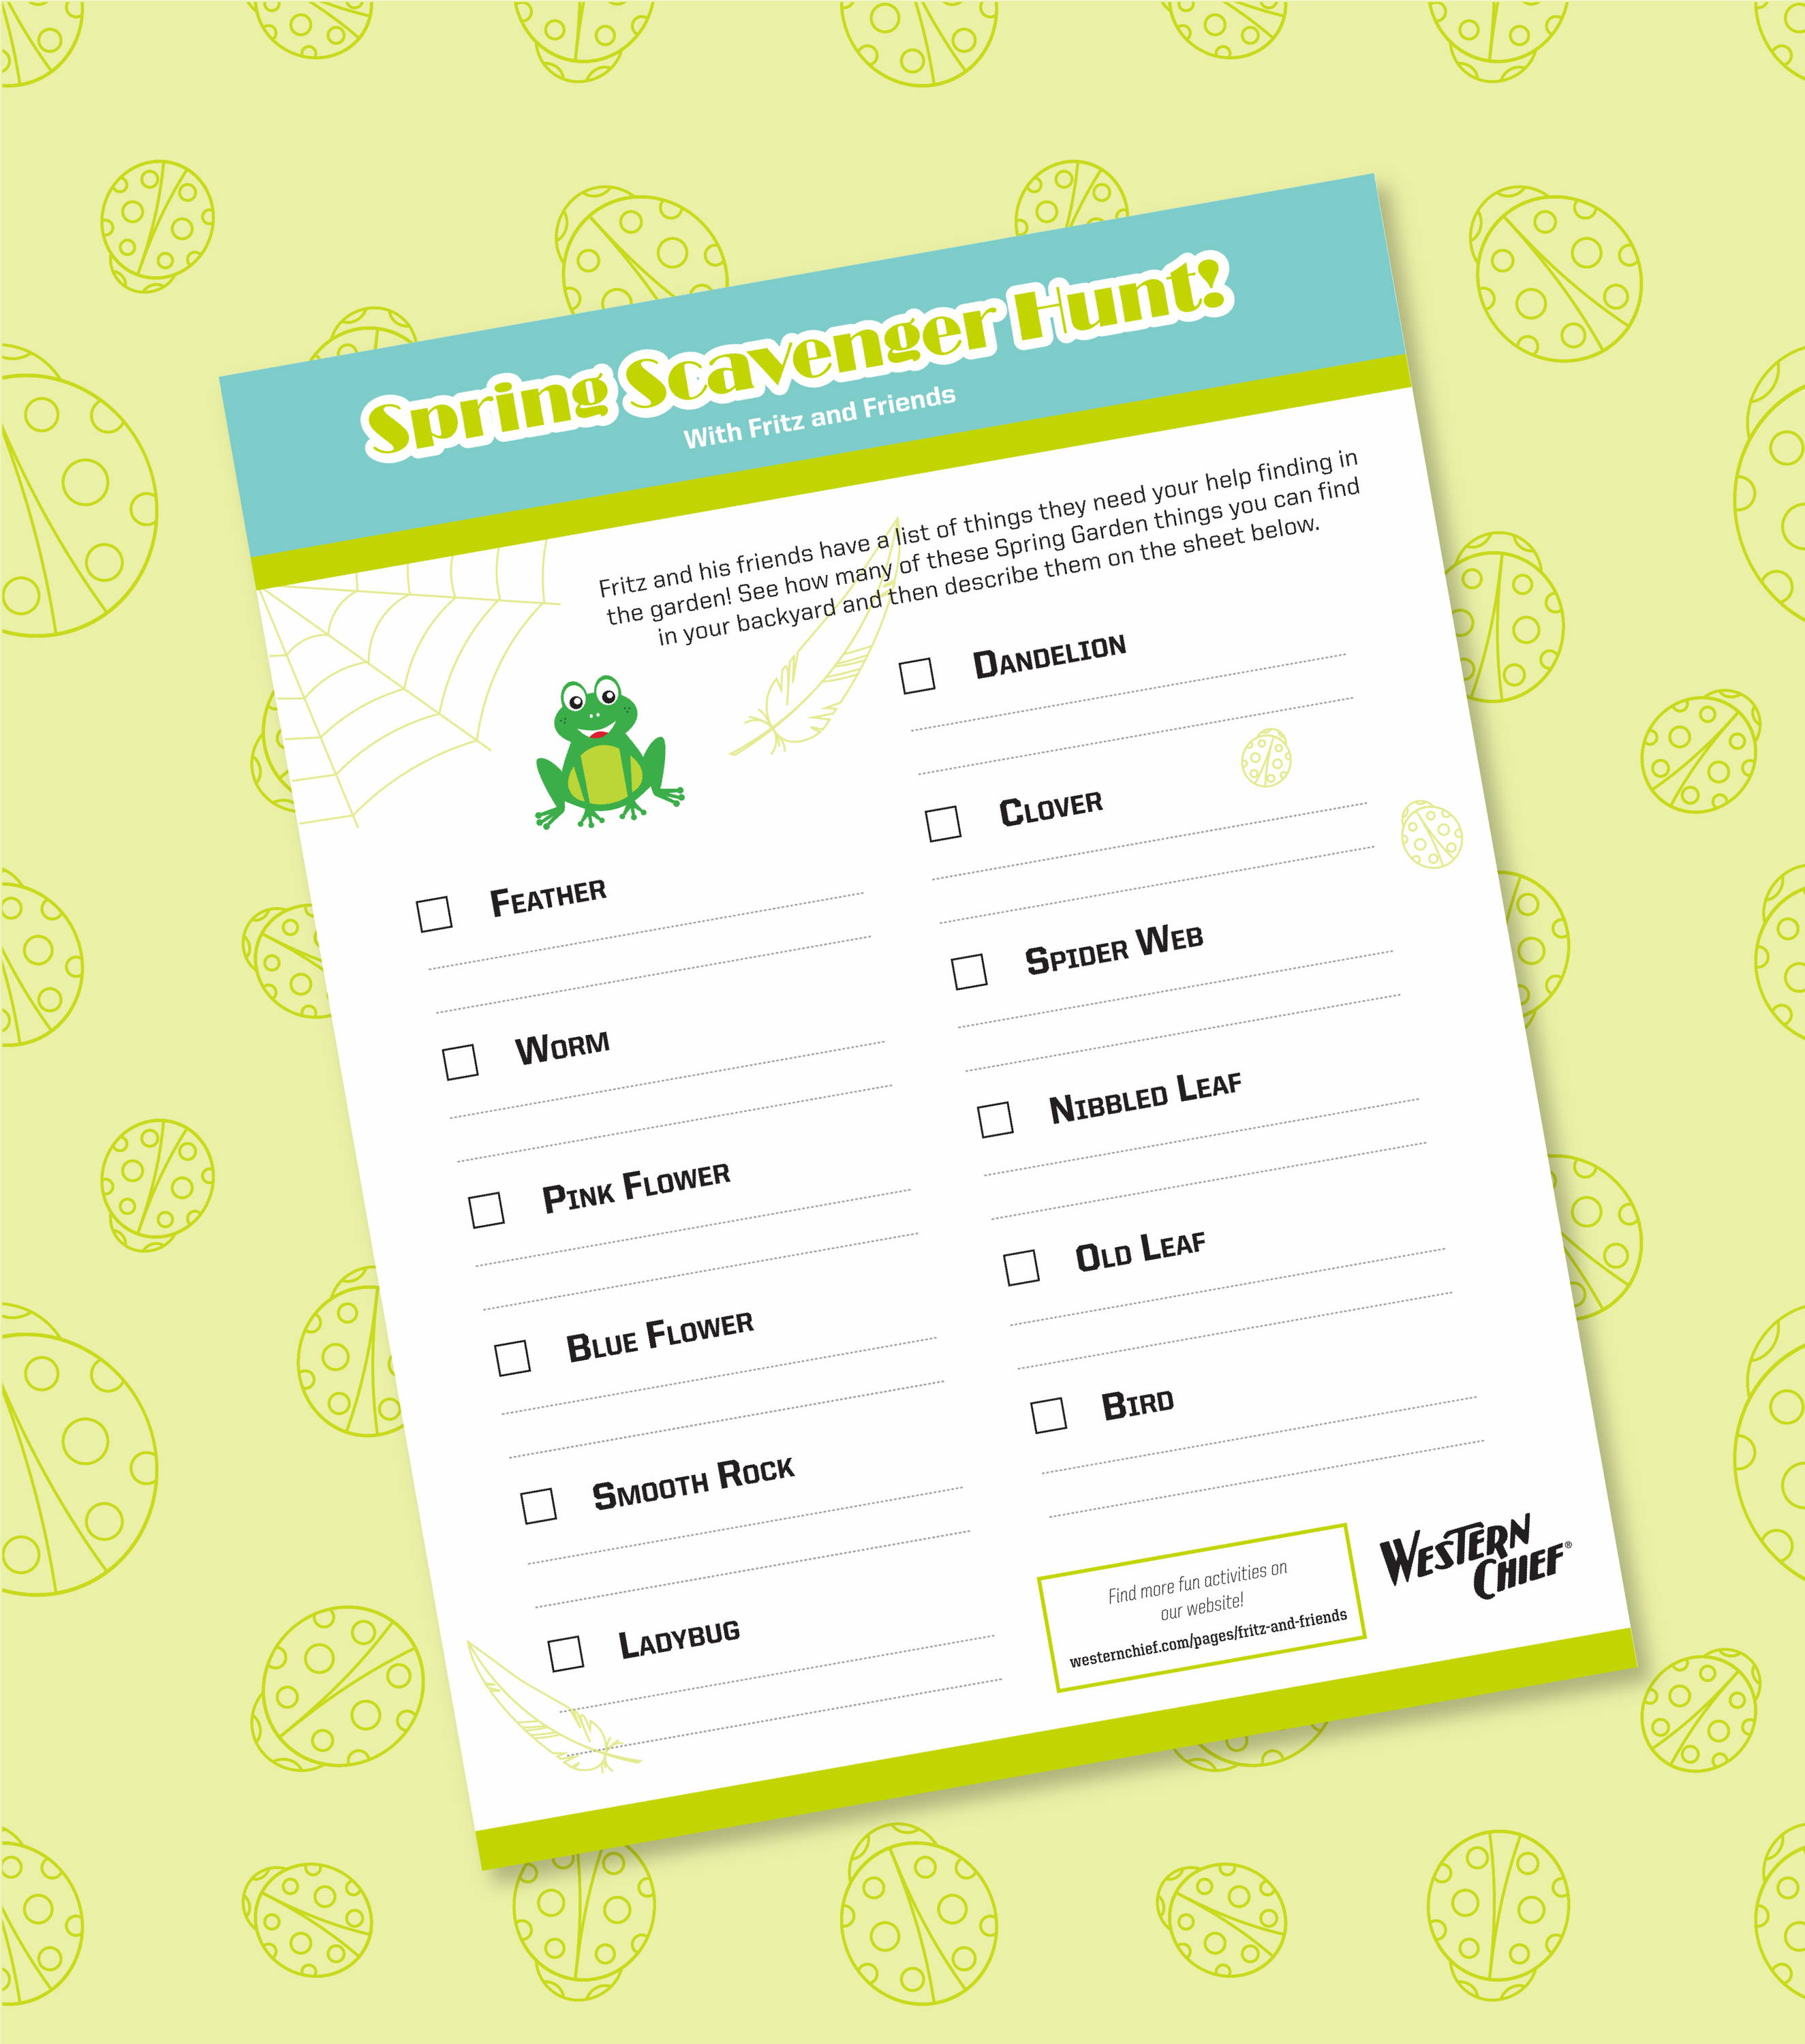 Western Chief Spring Scavenger Hunt Activity